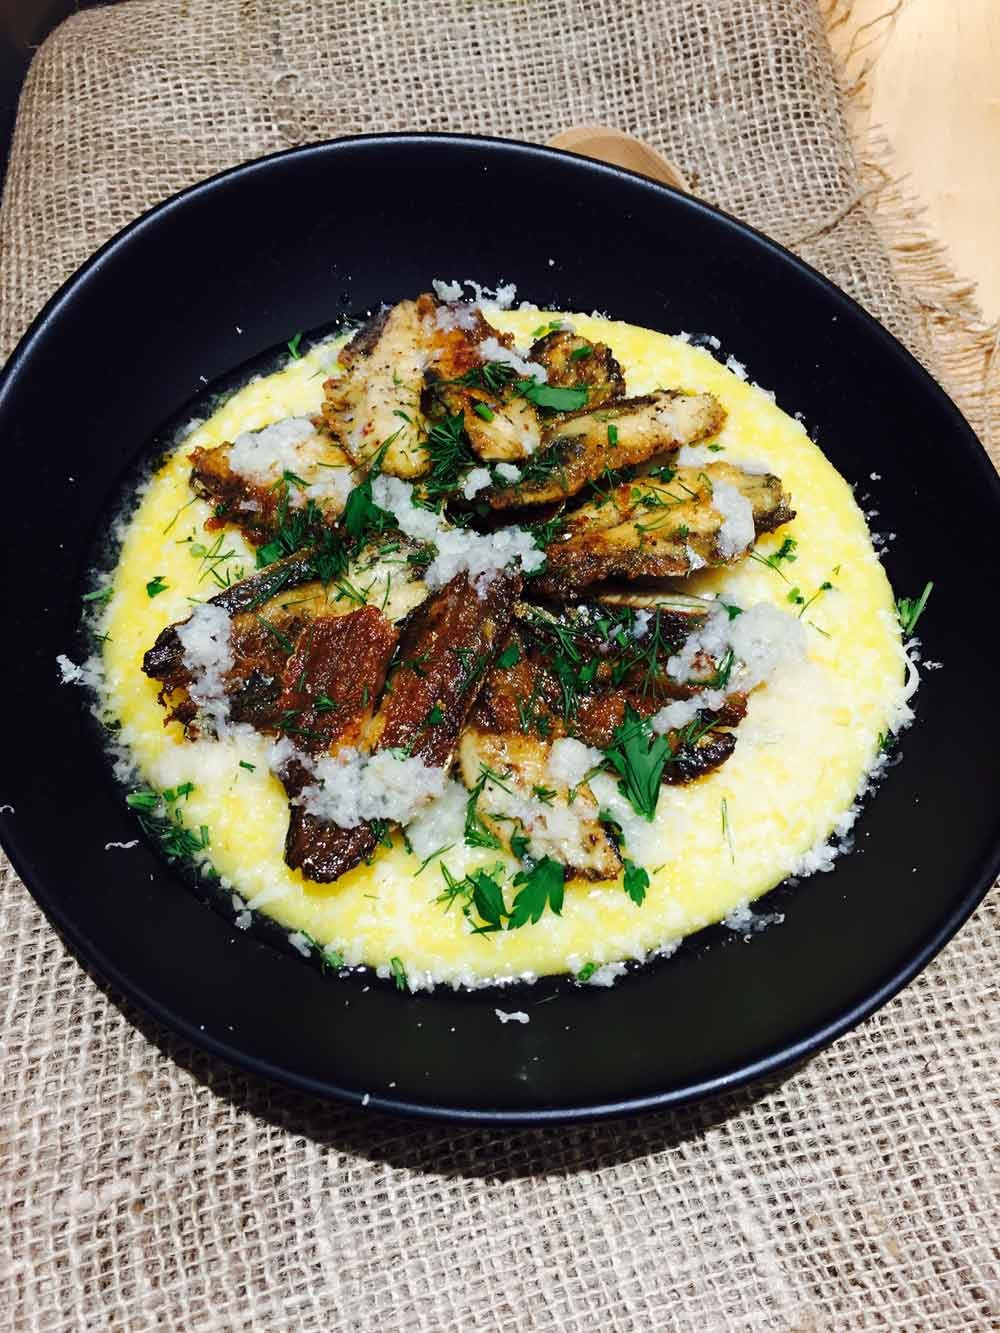 sardine and polenta with garlic and Parmesan cheese